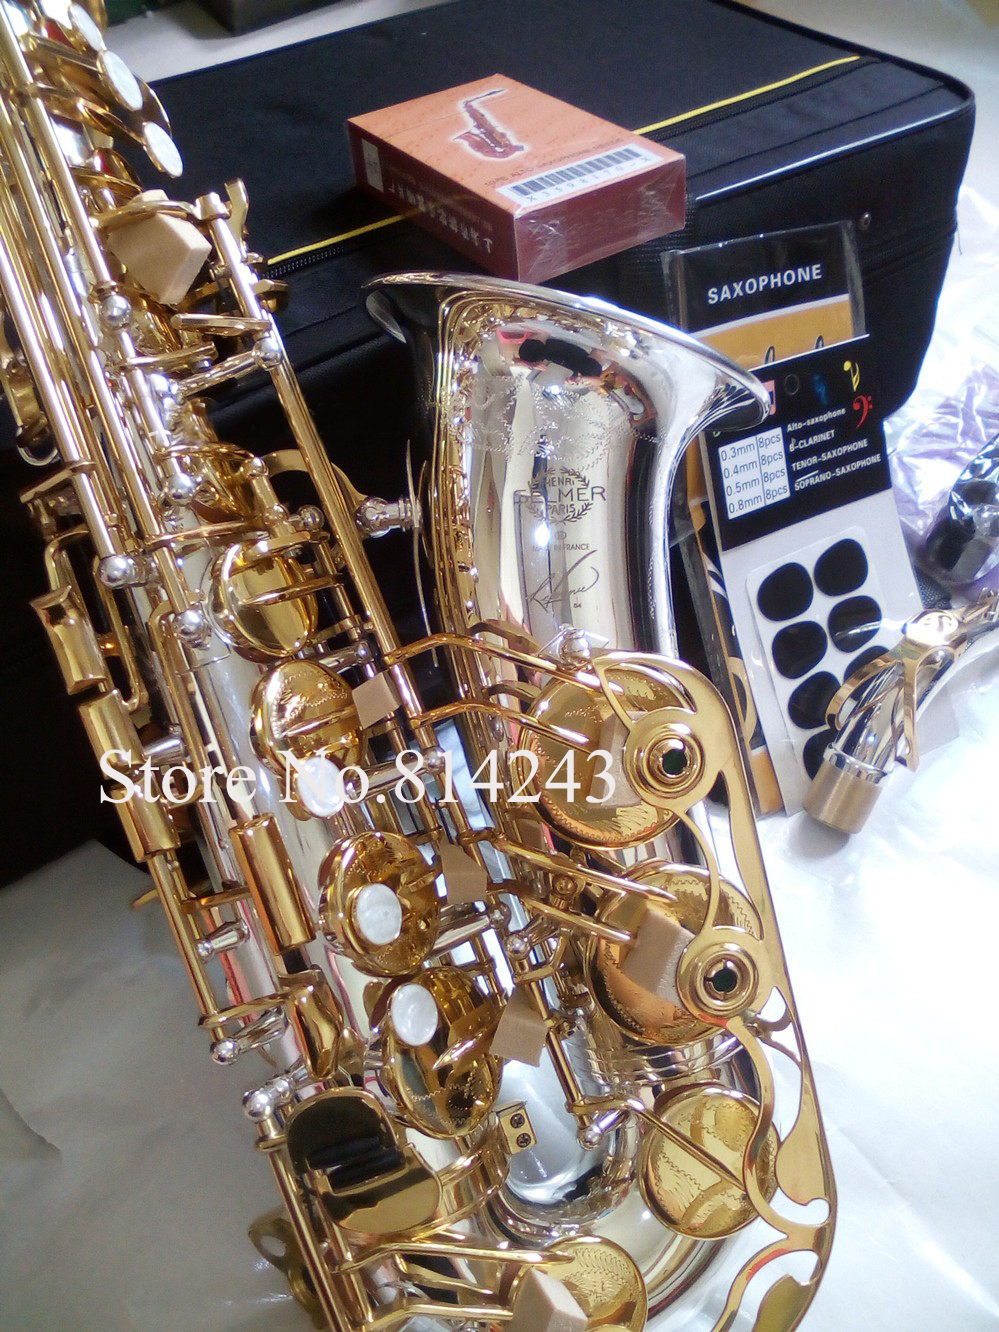 Copy France Henri Selmer 54 Alto Eb Saxophone Silvering Surface Of The Pipe Body Gold Key Sax High Quality Instruments With Case free shipping france henri selmer saxophone alto 802 musical instrument alto sax gold curved saxfone mouthpiece electrophoresis